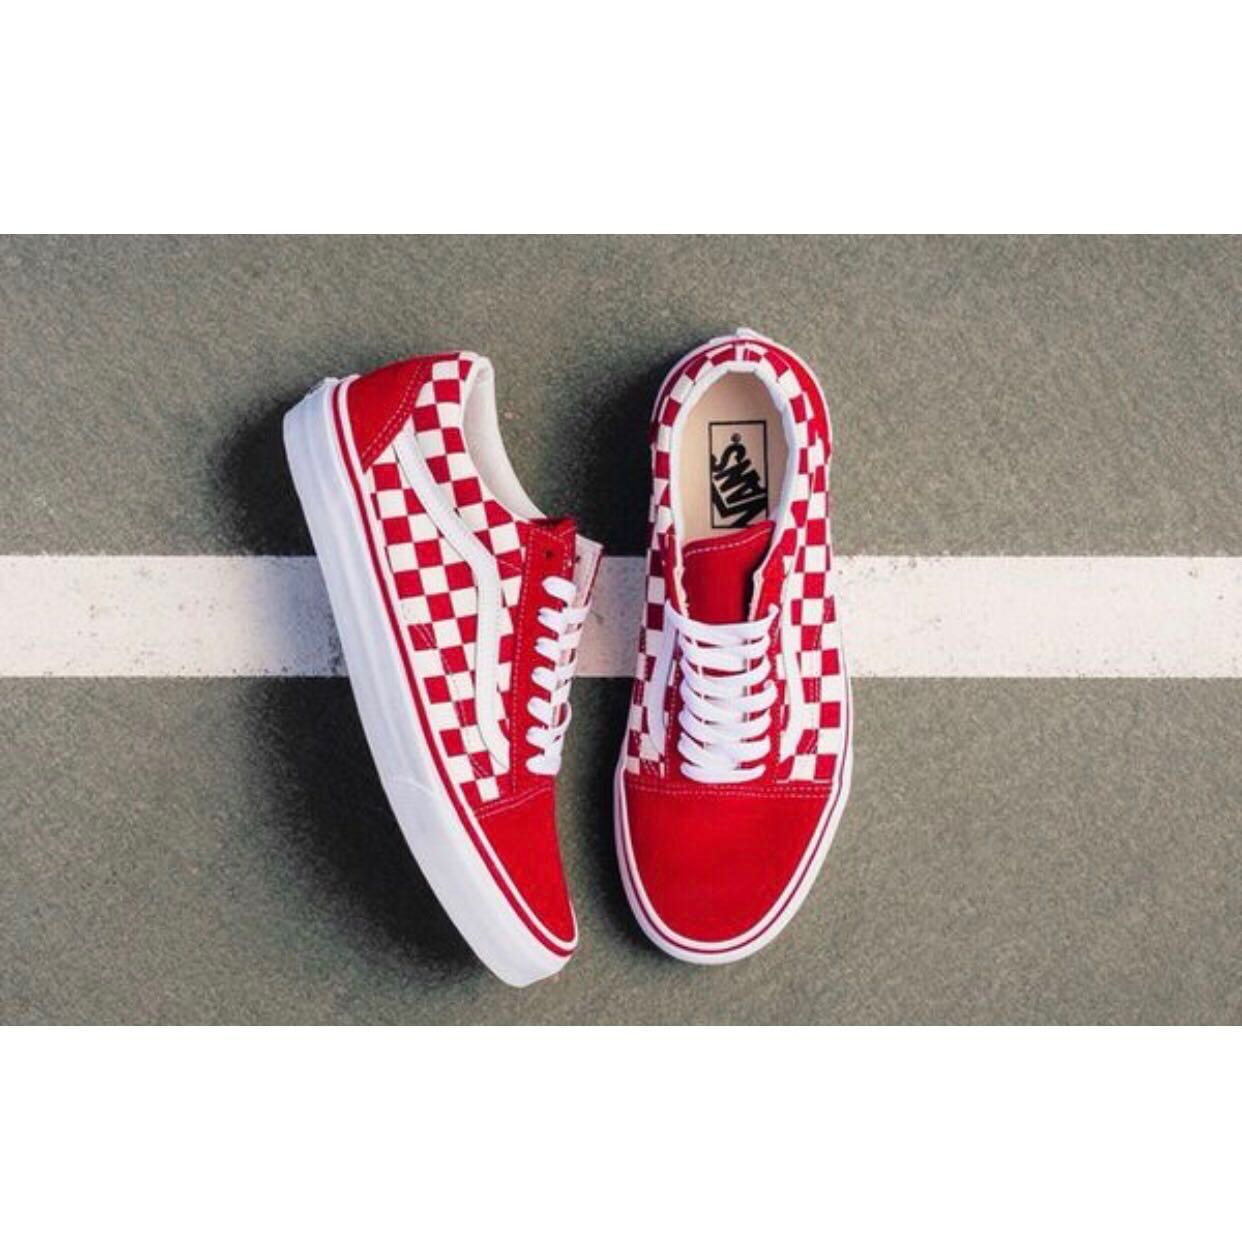 b764b441e9a8 Red White Checkerboard Old Skool Vans AUTHENTIC